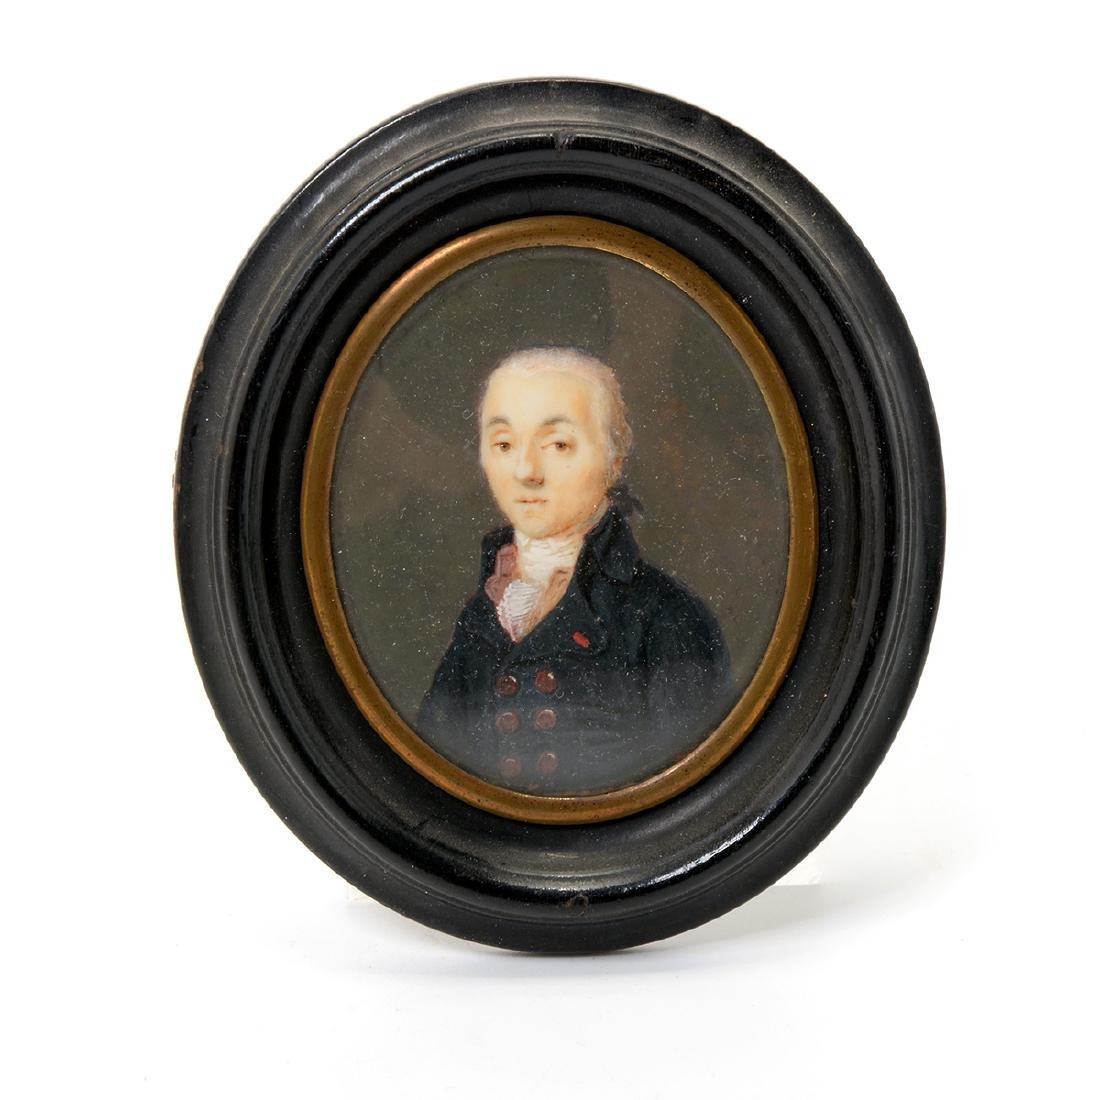 Nine Miniature Portraits of Men Including Blue Boy - 9